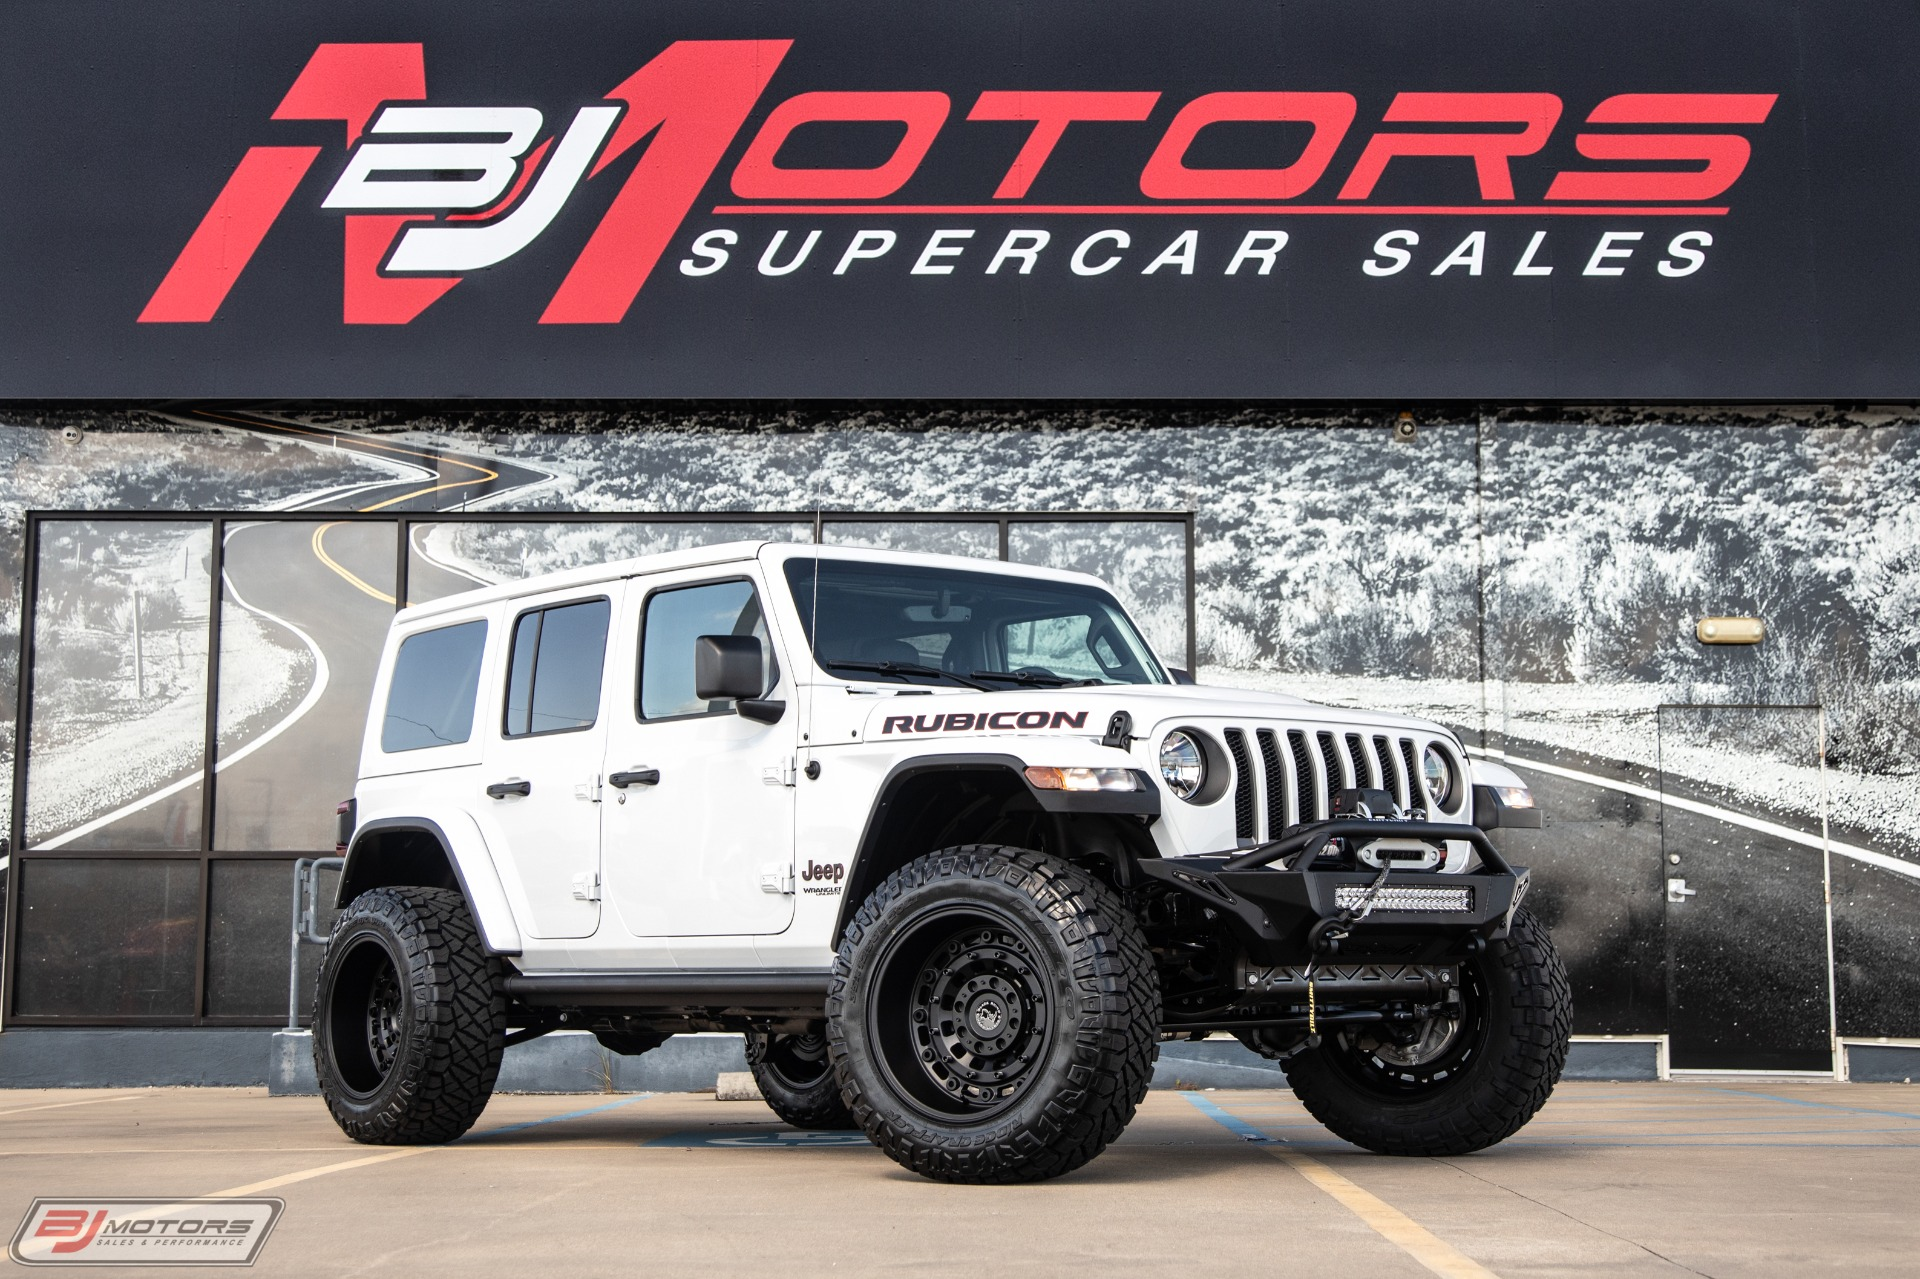 Used 2020 Jeep Wrangler Unlimited Rubicon For Sale Special Pricing Bj Motors Stock 0lw272661